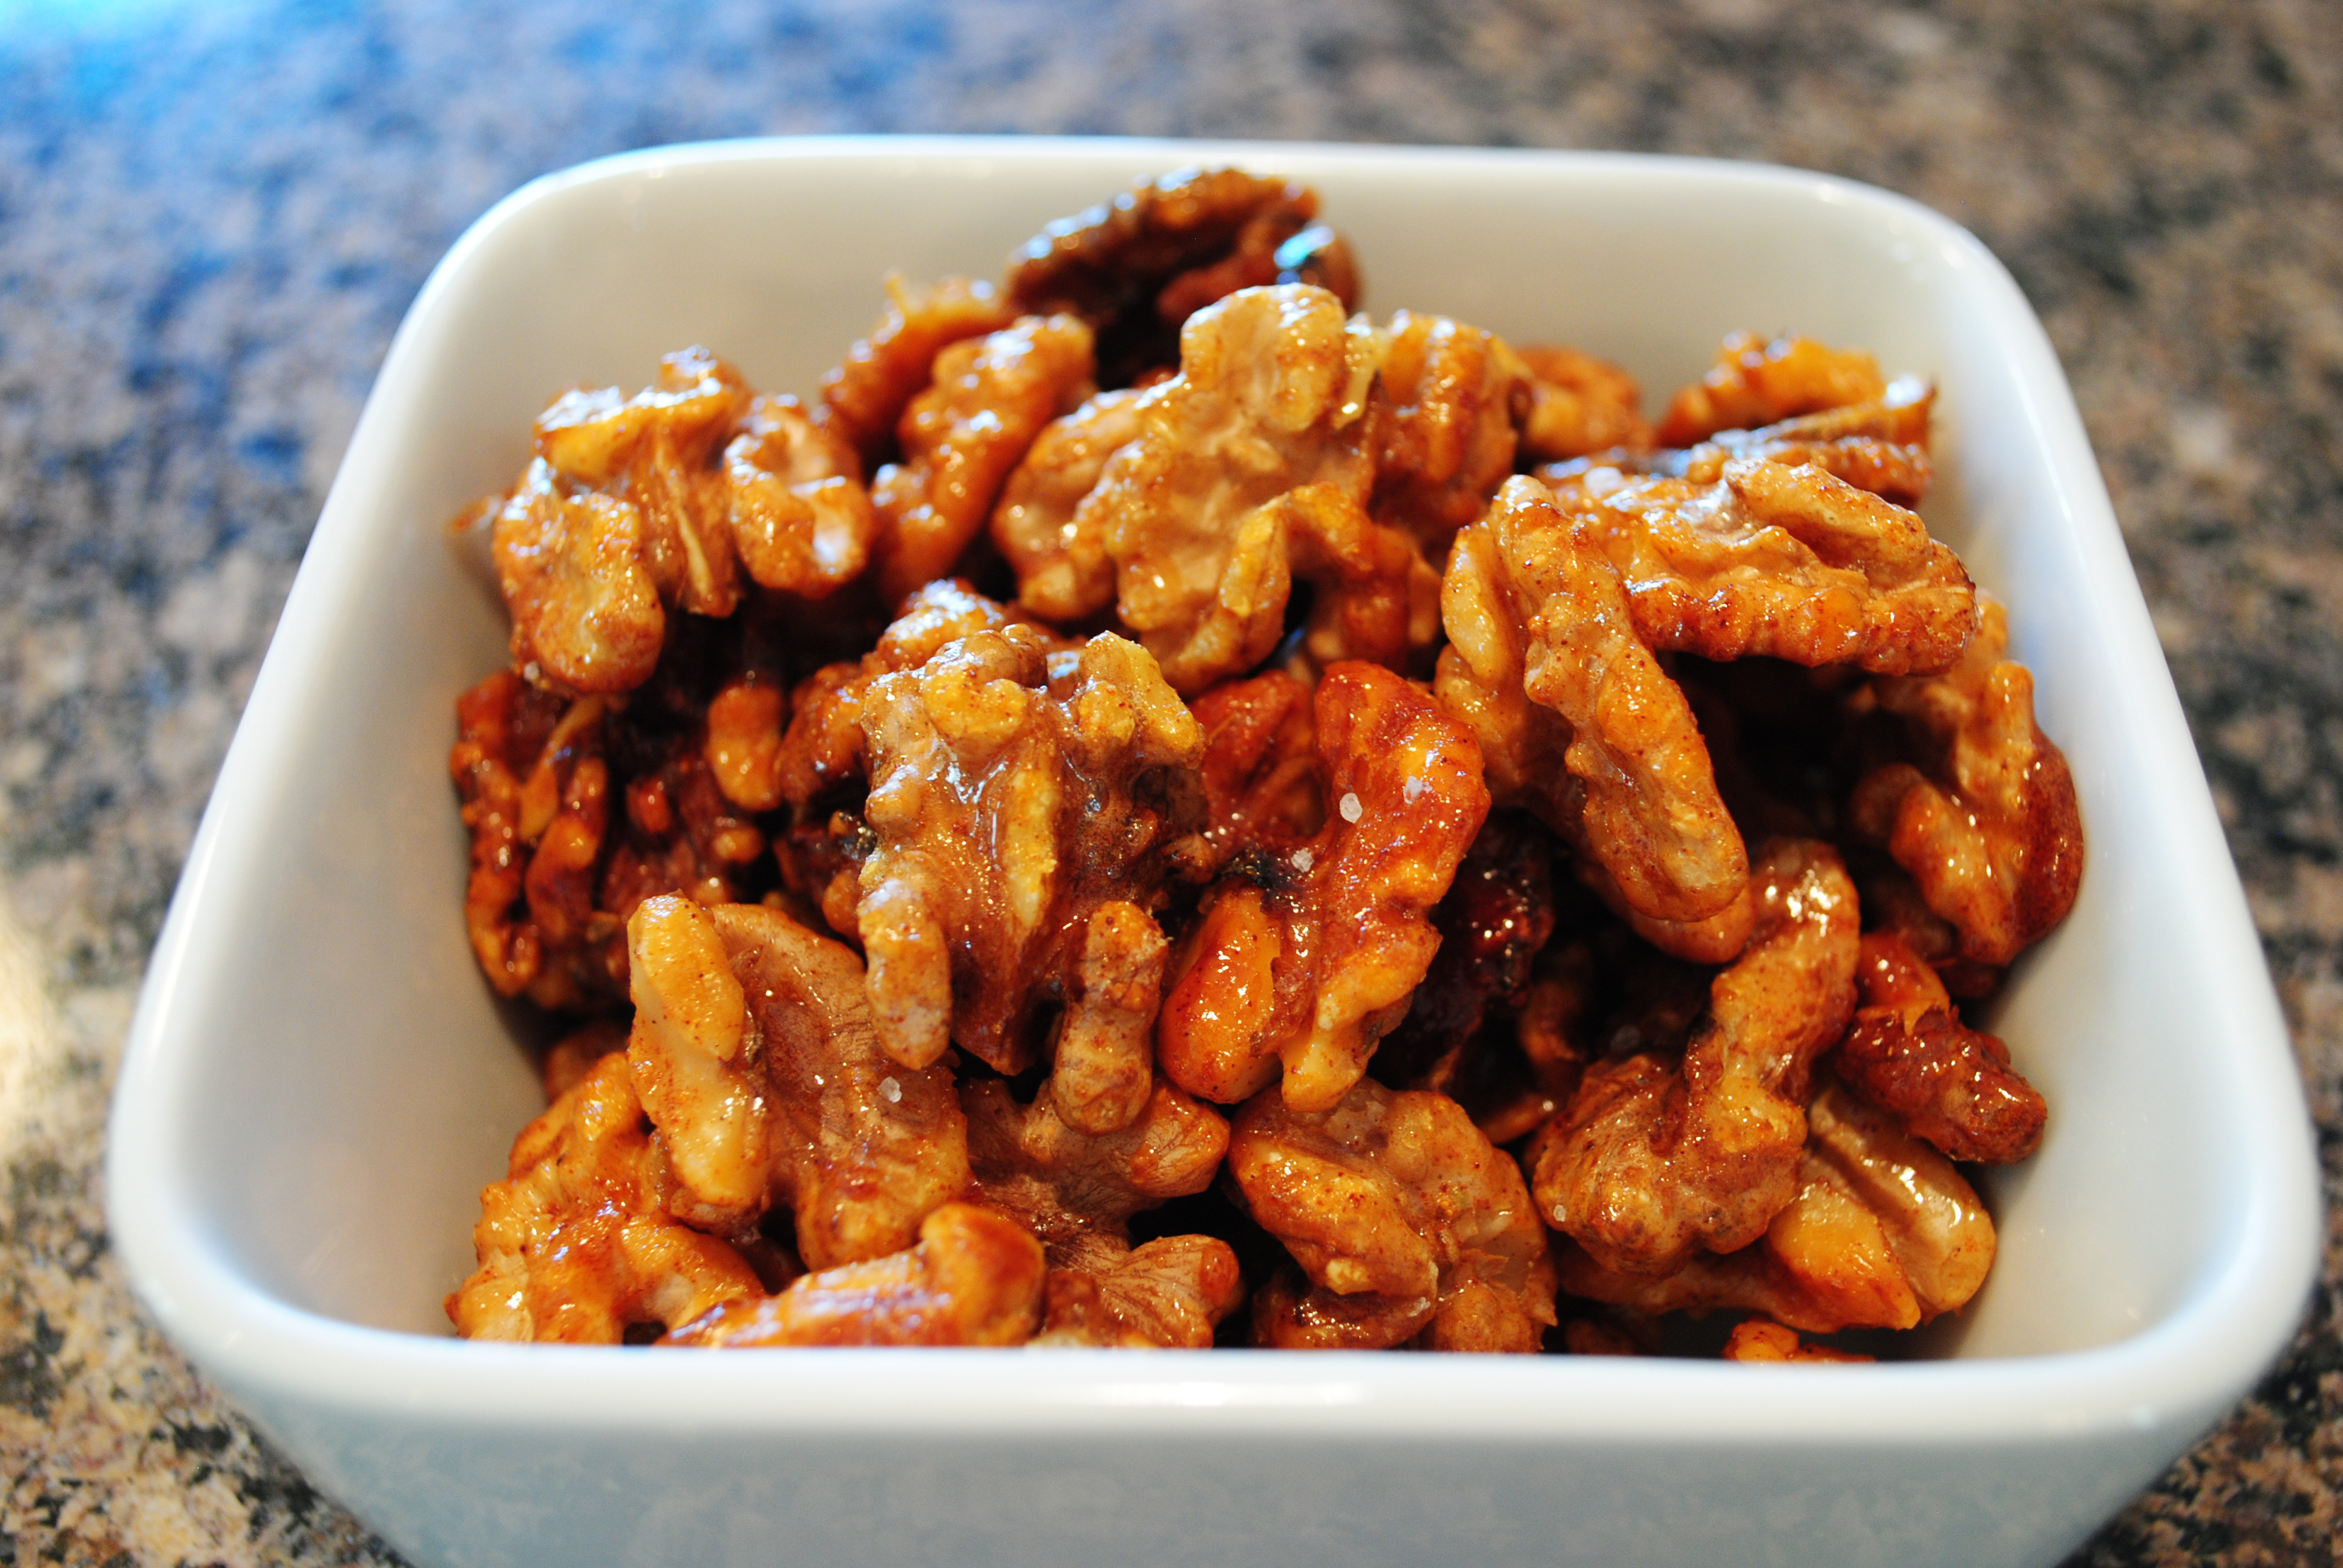 Agave Chili Baked Walnuts